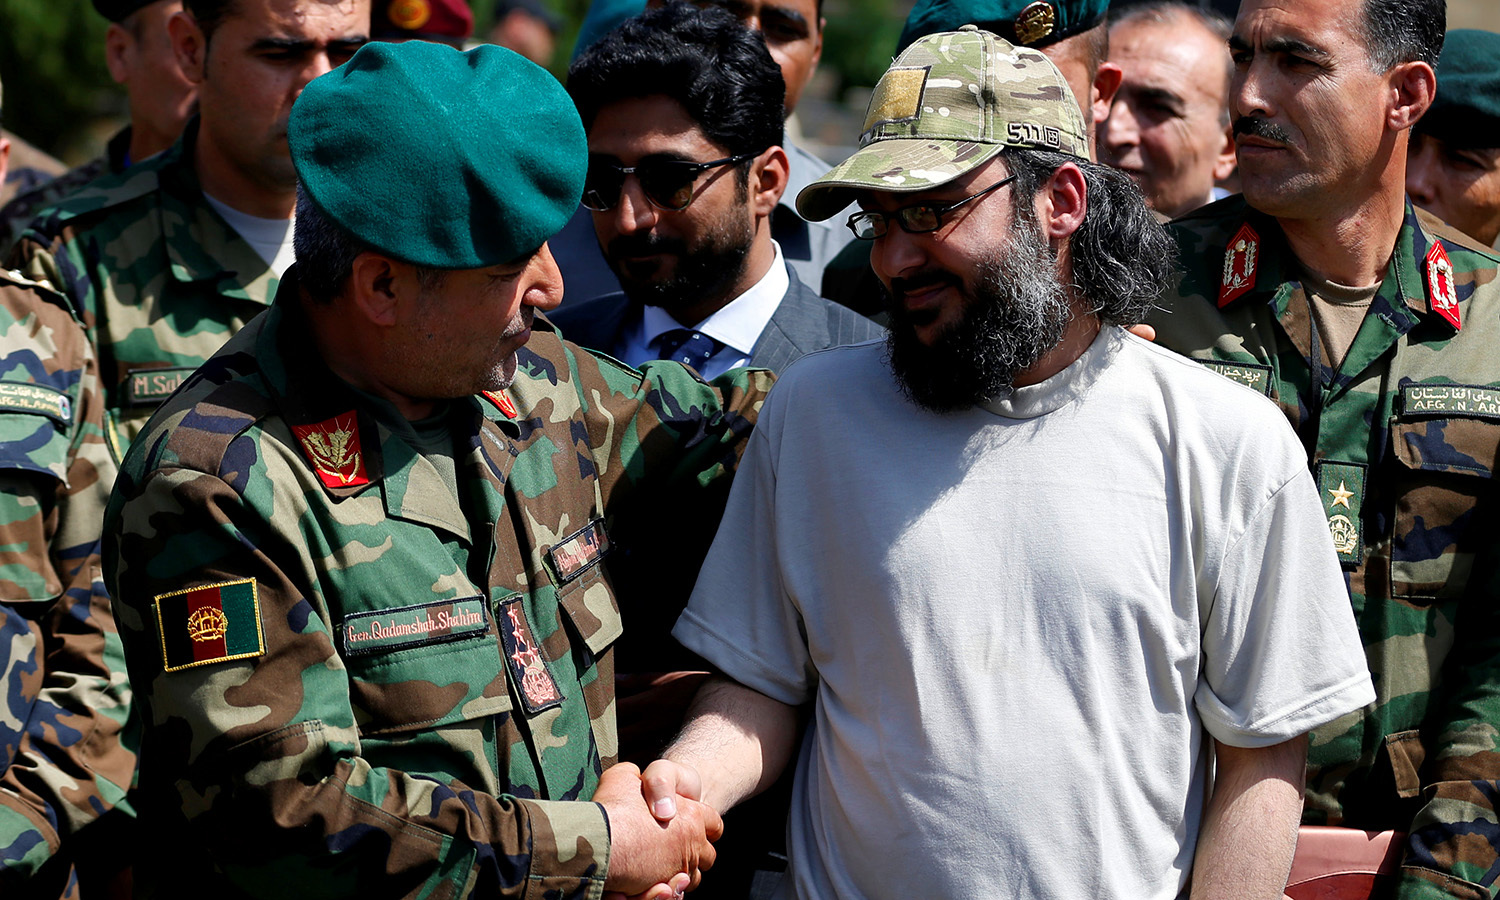 Ali Haider Gilani (R) shakes hands with Afghan Joint Chief of Staff Gen. Qadamshah Shahim at the Defence Ministry. -Reuters